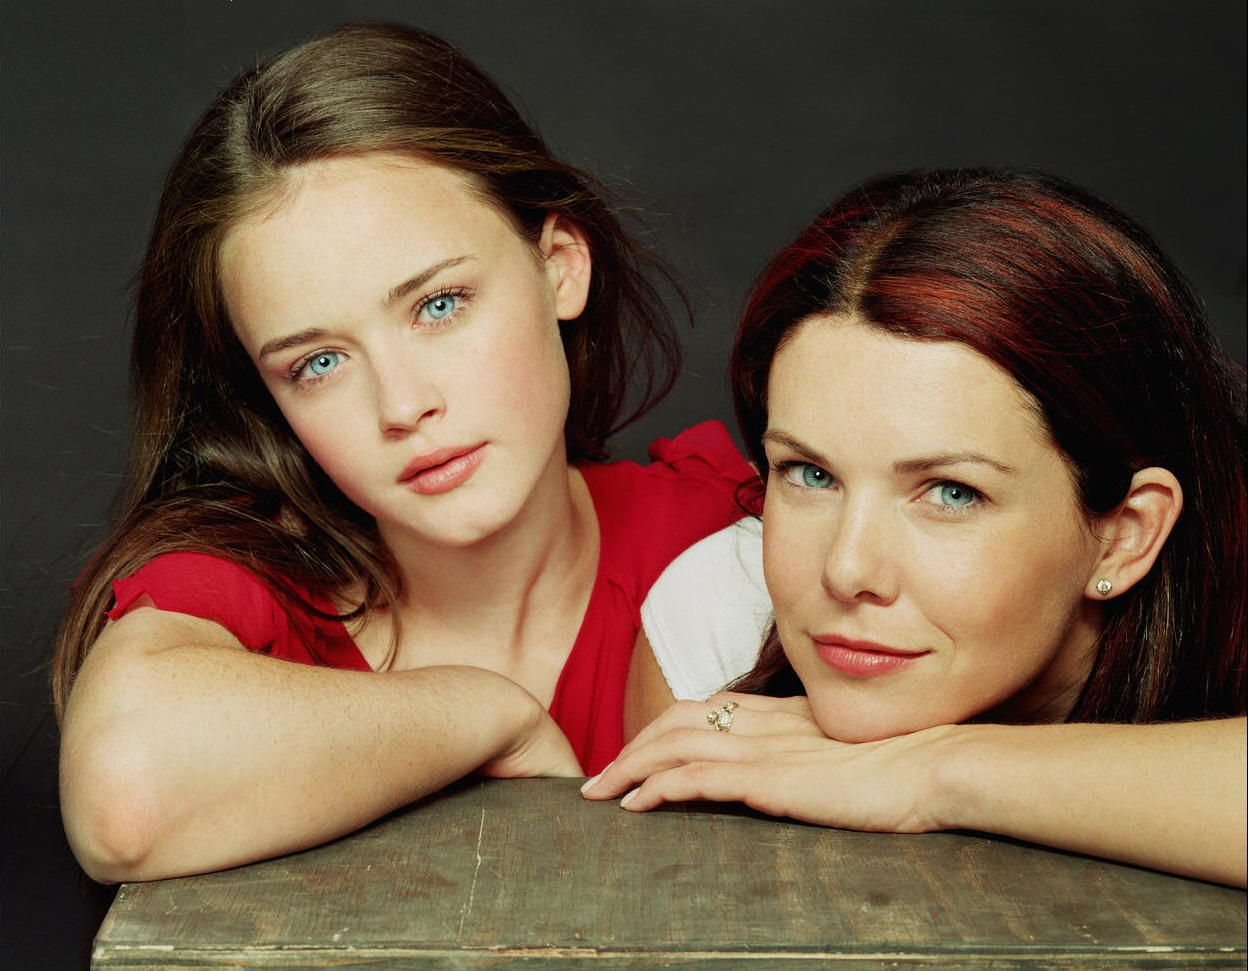 Alexis Bledel as Rory Gilmore and Lauren Graham as Lorelai Gilmore in 'Gilmore Girls.'